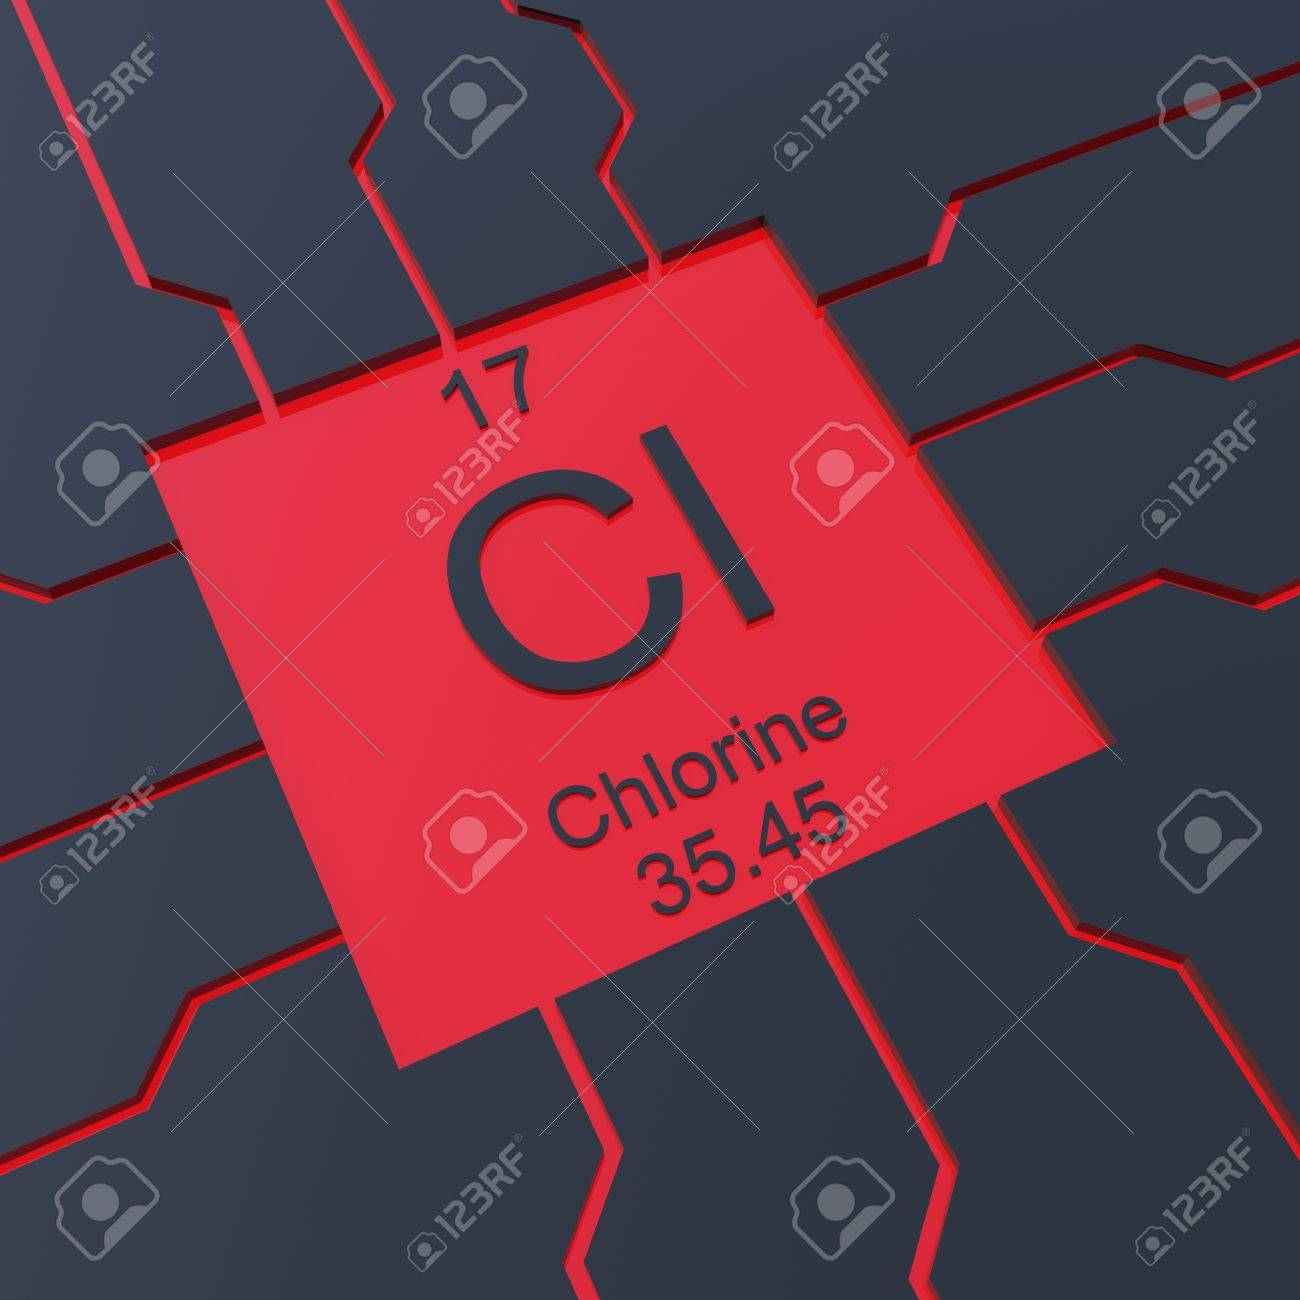 Chlorine symbol element from the periodic table stock photo chlorine symbol element from the periodic table stock photo 31217739 gamestrikefo Image collections